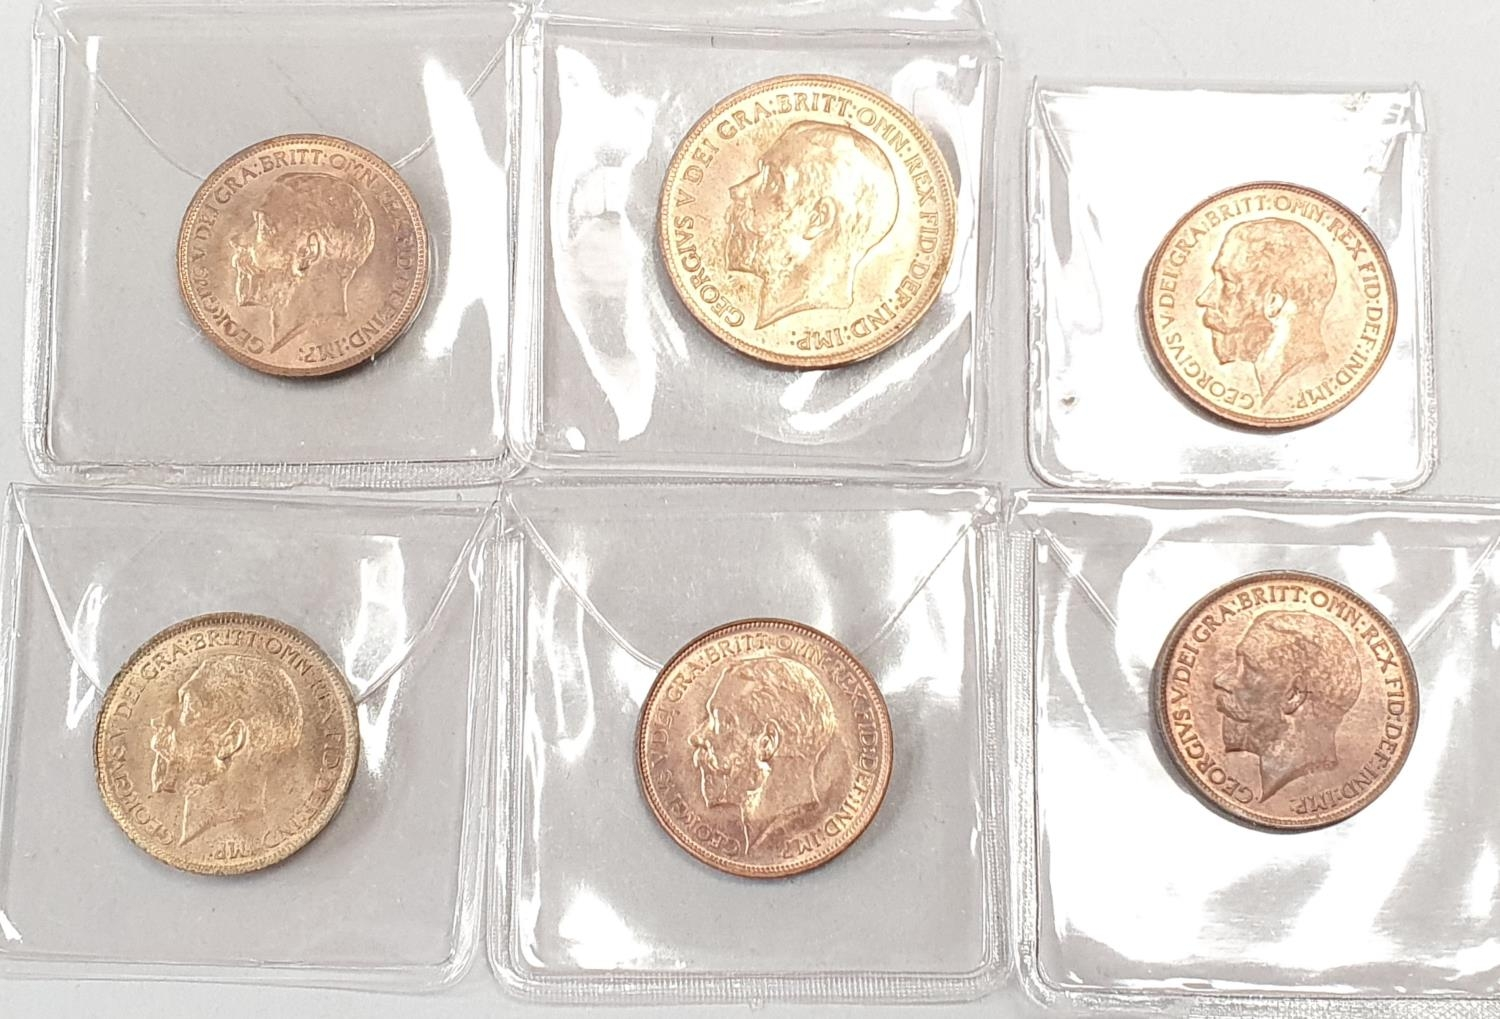 George V 1917 penny, 4 x 1913 half pennies and a 1917 half penny. - Image 2 of 2